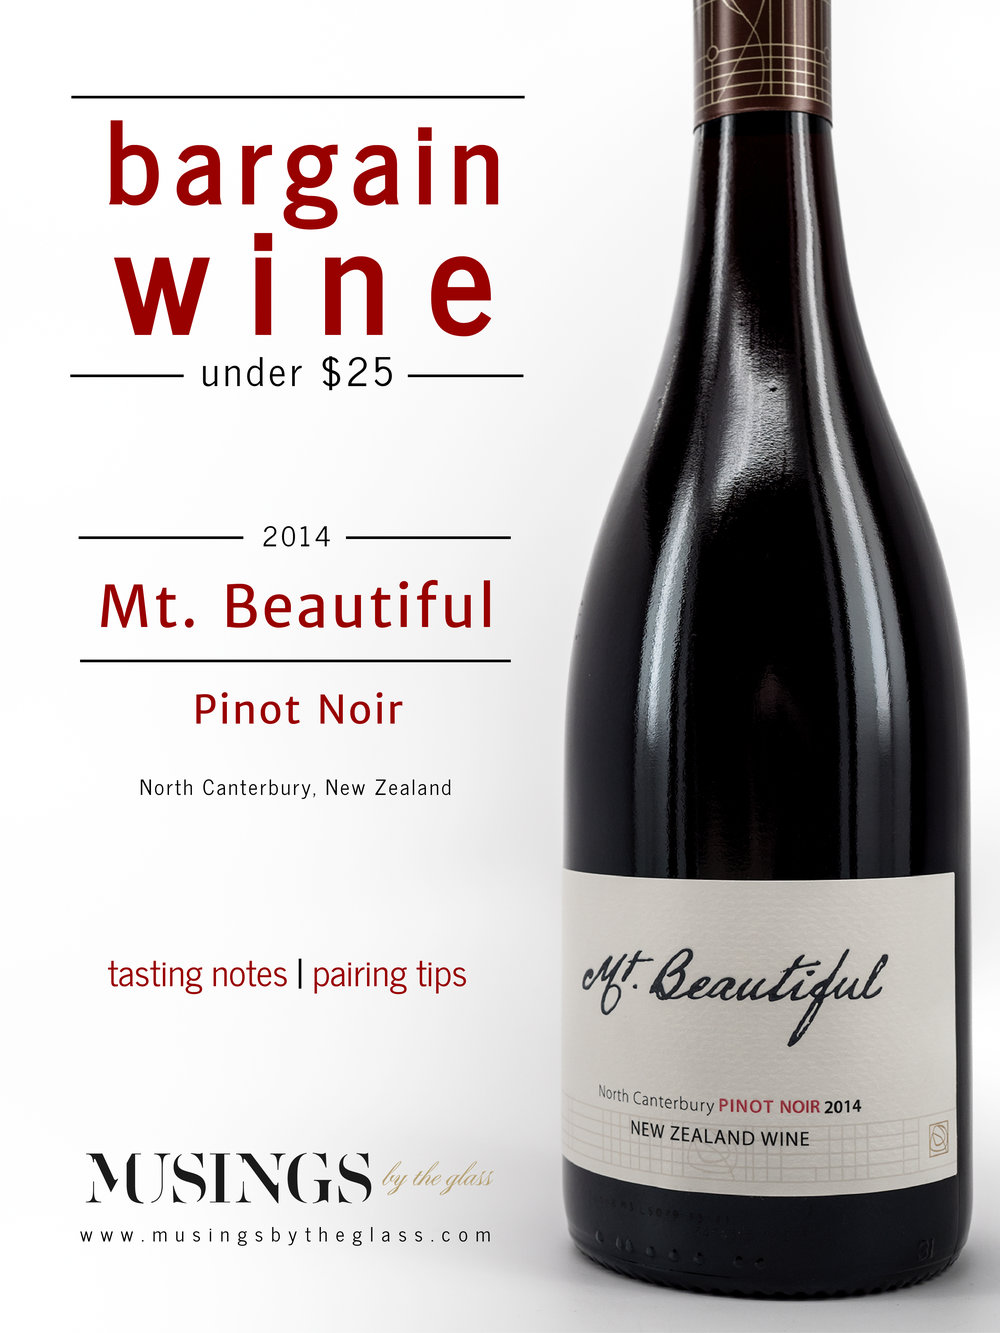 Musings by the Glass - Weekday Wines - 2014 Mt. Beautiful Pinot Noir from North Canterbury, New Zealand